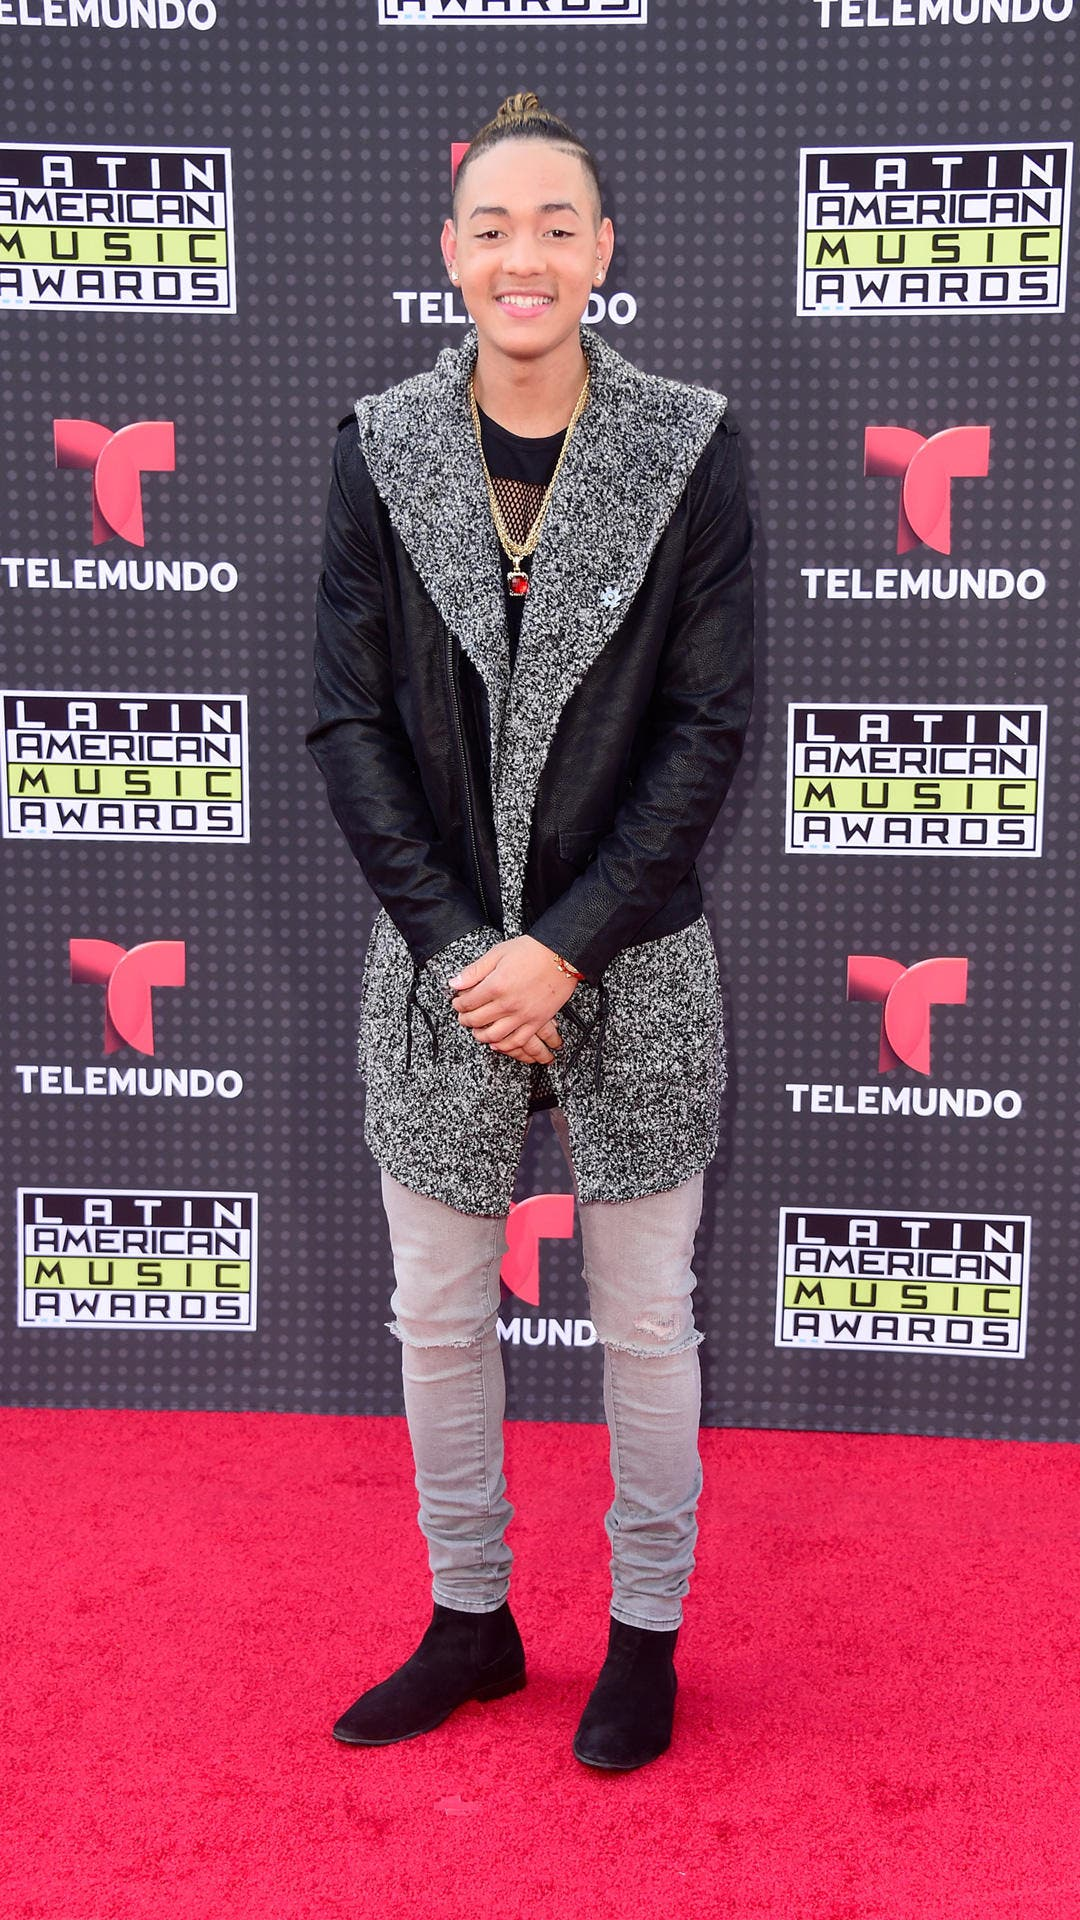 HOLLYWOOD, CA - OCTOBER 08: BB Bronx attends Telemundo's Latin American Music Awards at the Dolby Theatre on October 8, 2015 in Hollywood, California. (Photo by Frazer Harrison/Getty Images)